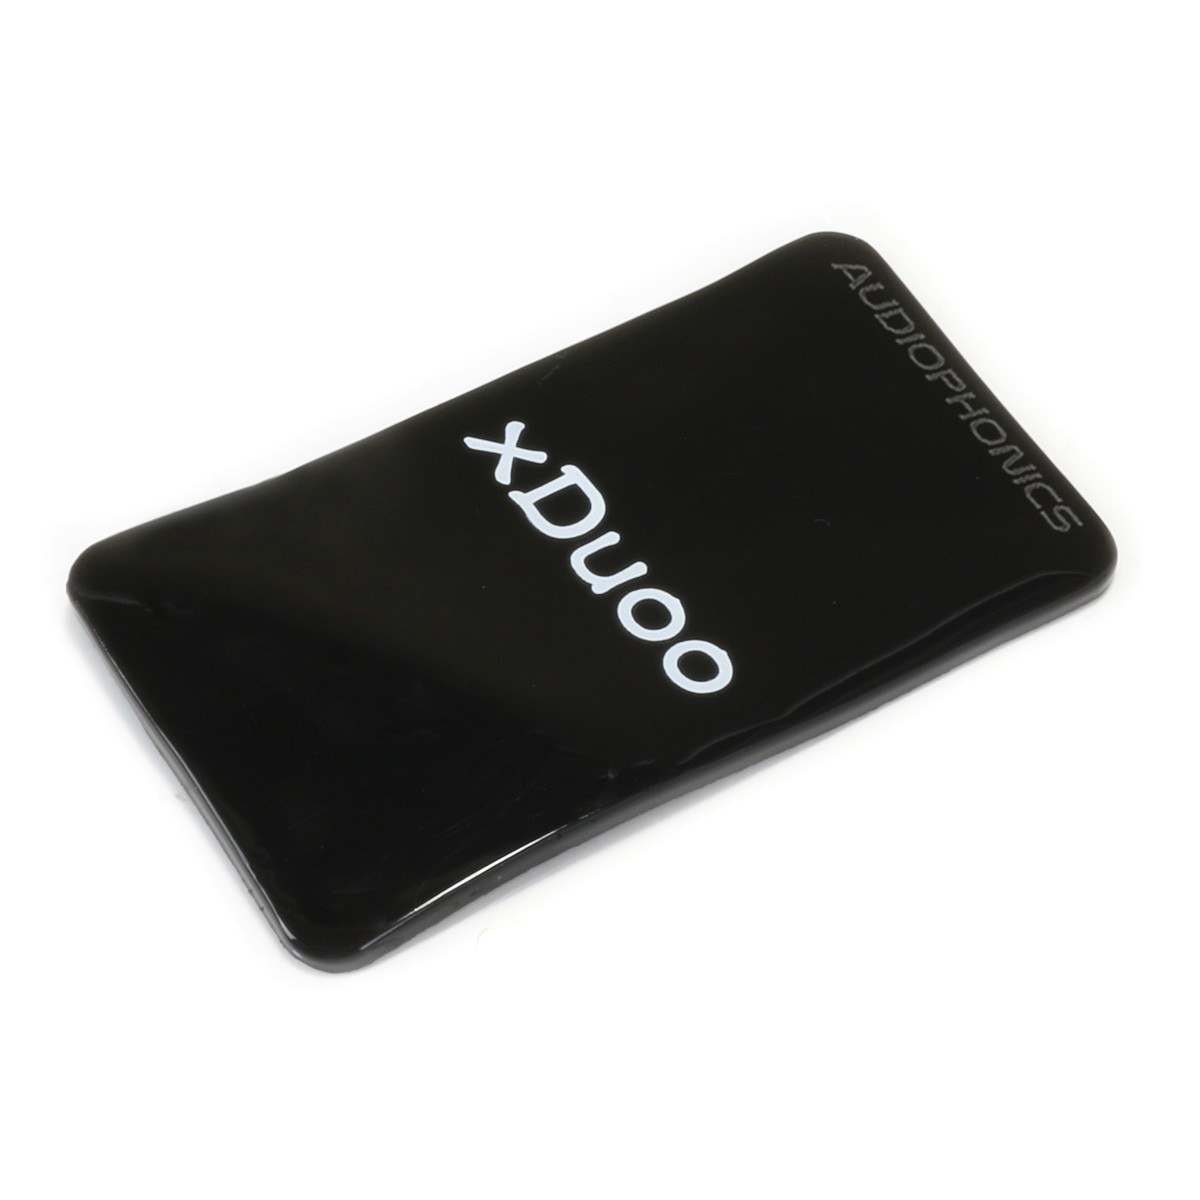 XDUOO X-SK1 Adhesive Pad for Mobile Devices